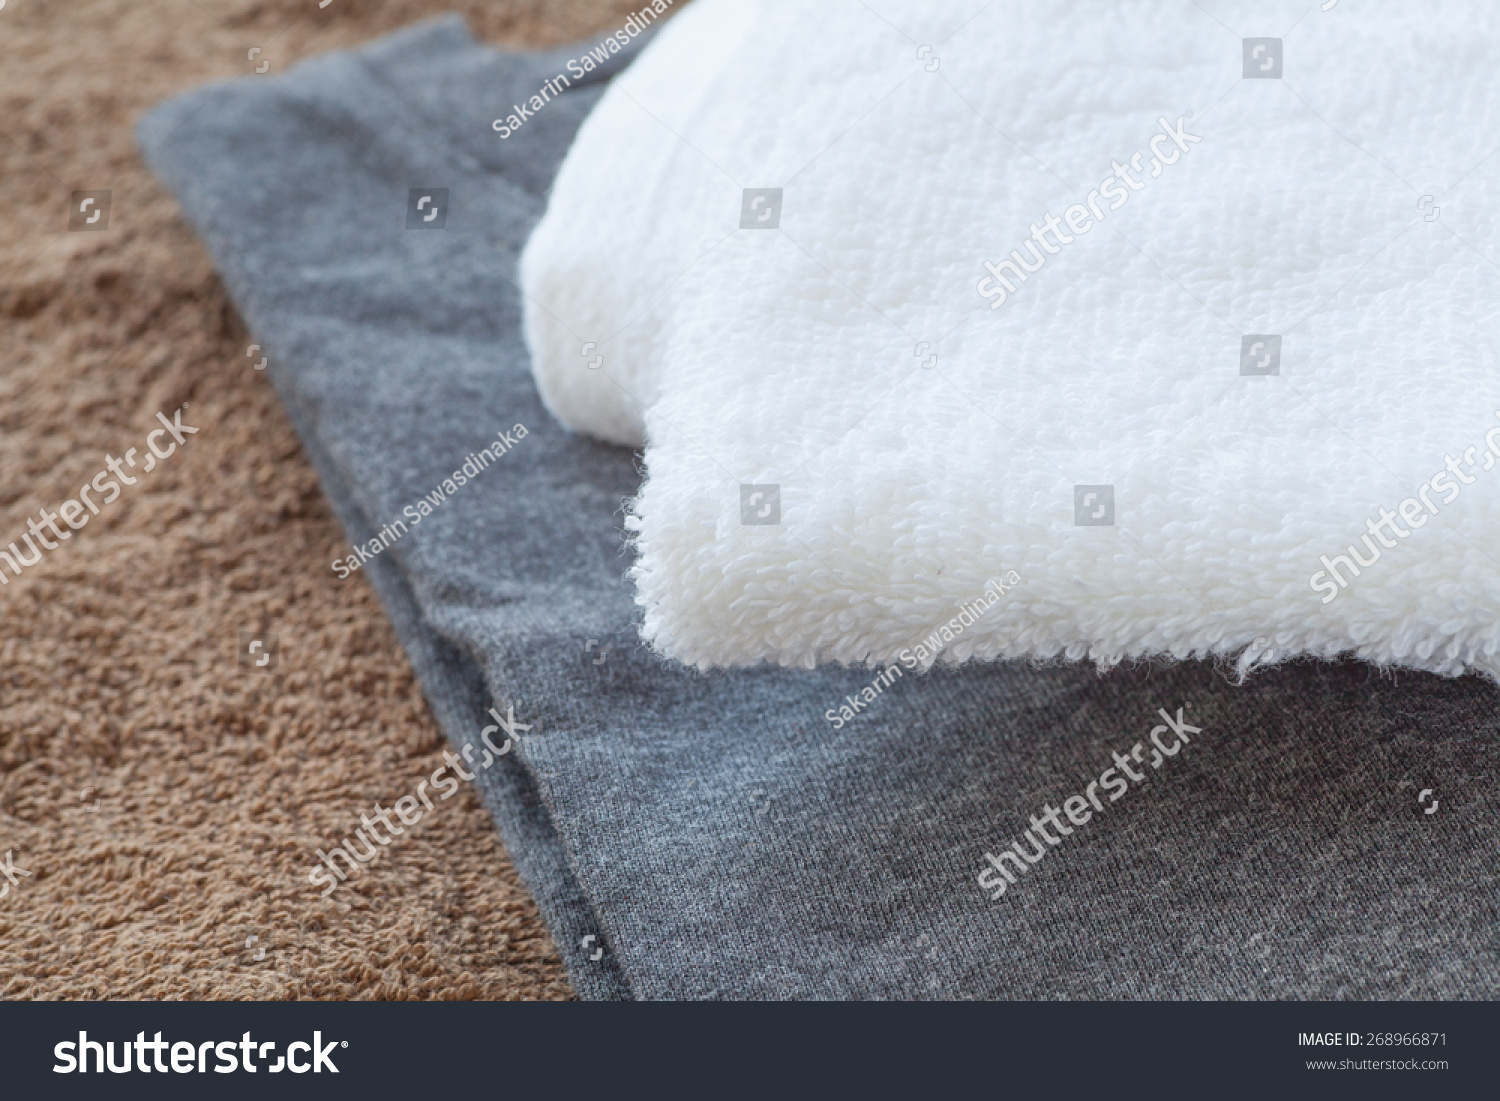 White towel and black t - shirt on brown towel background #268966871